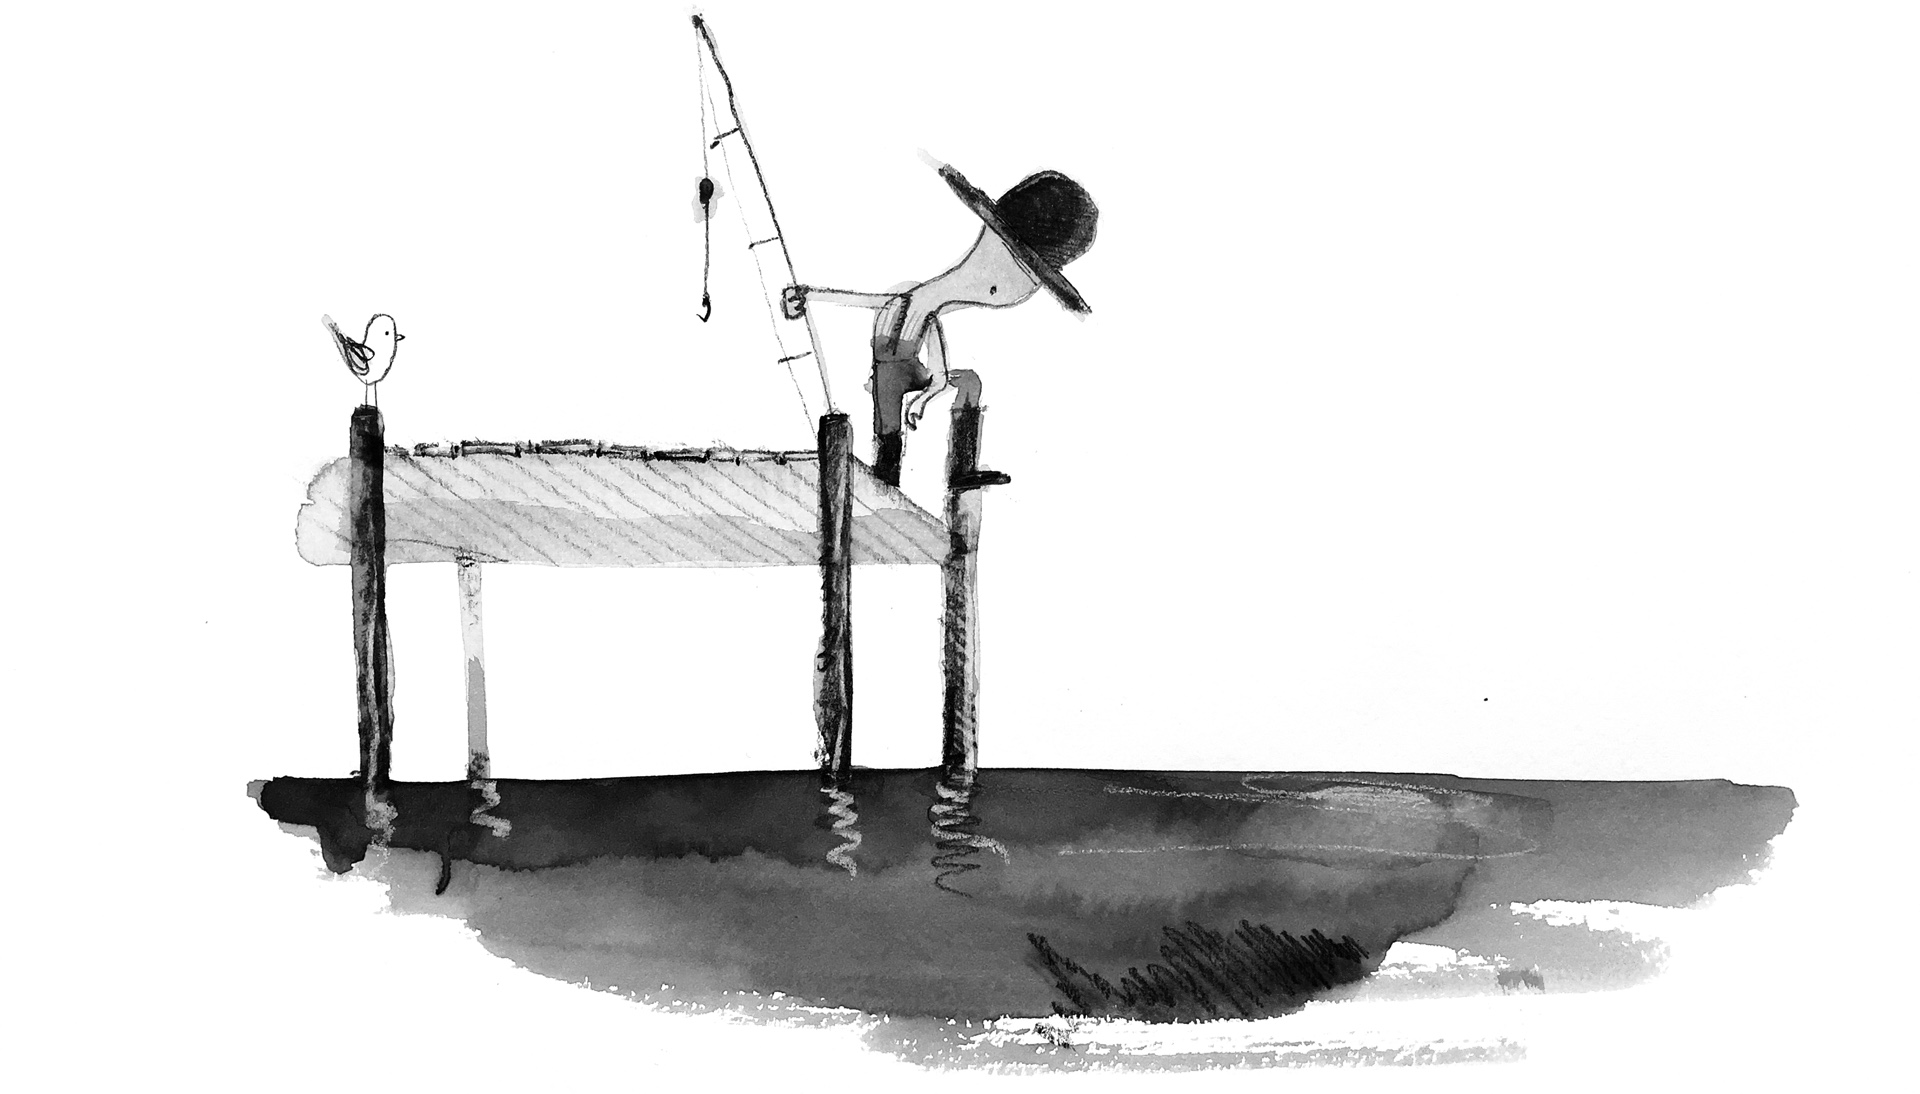 Illustration of a young fisherman looking down at the water from a pier, holding a fishing pole